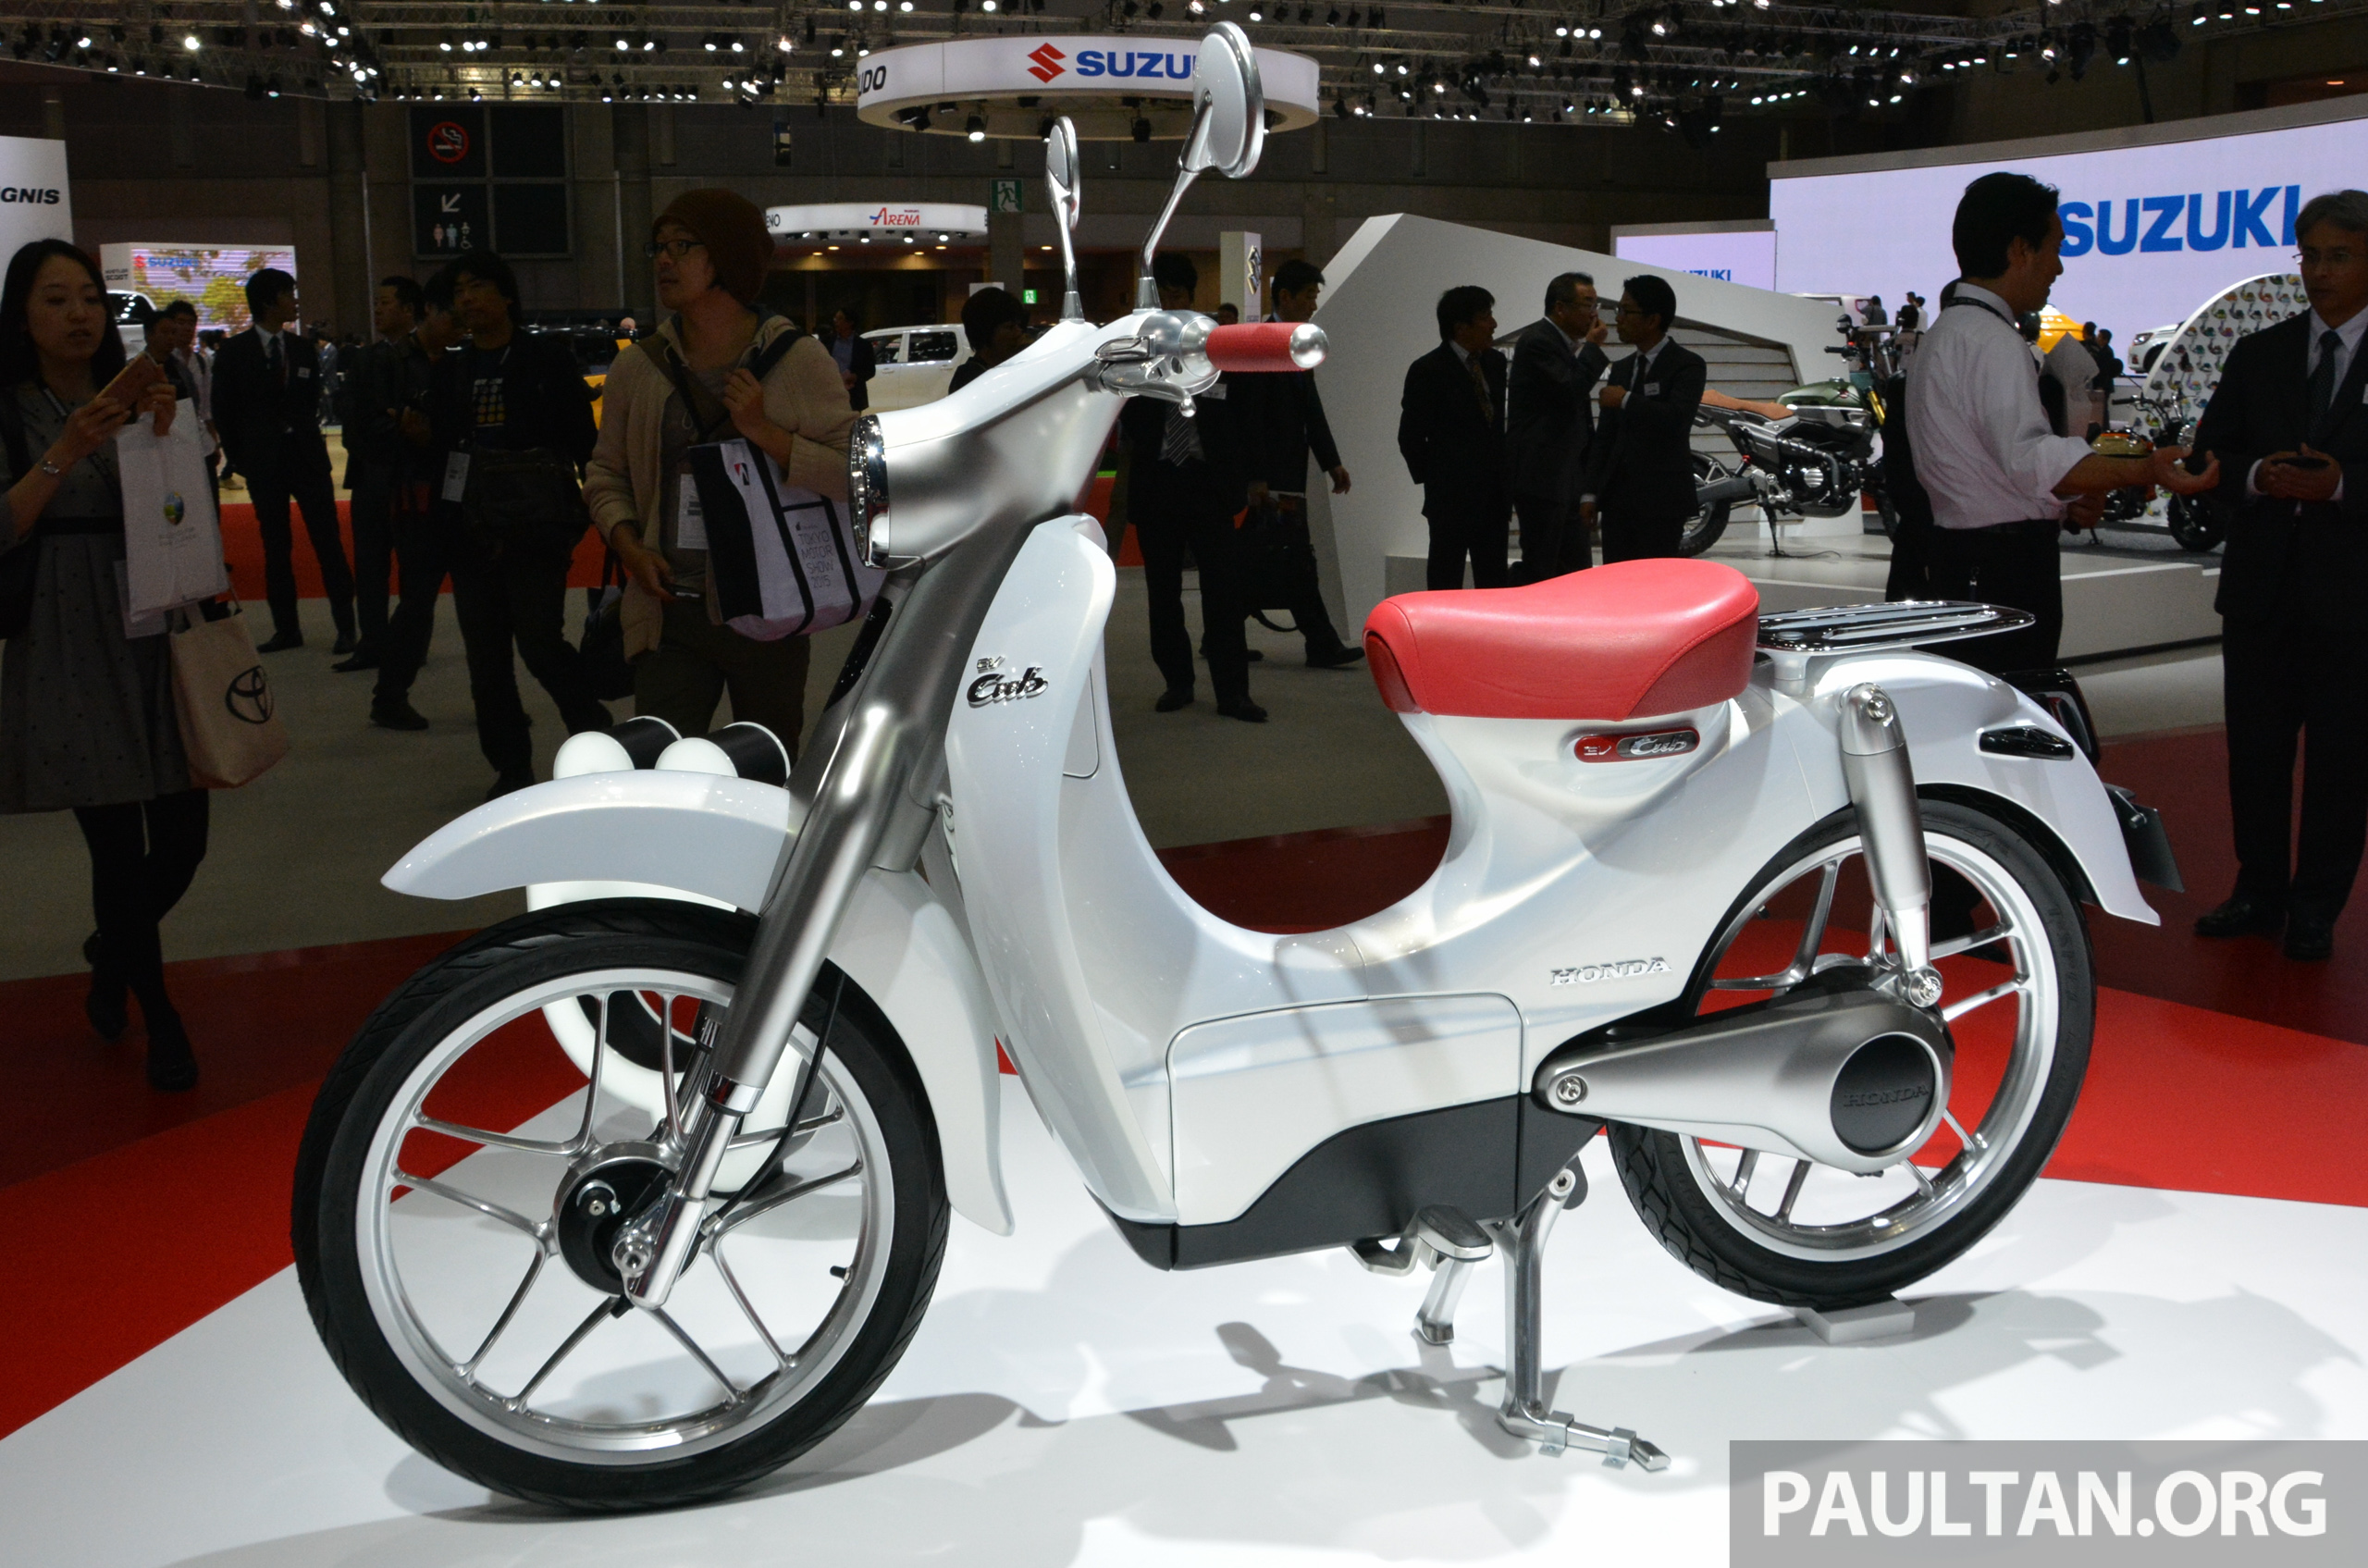 honda ev cub electric bike out in japan in two years asean markets to follow is malaysia. Black Bedroom Furniture Sets. Home Design Ideas